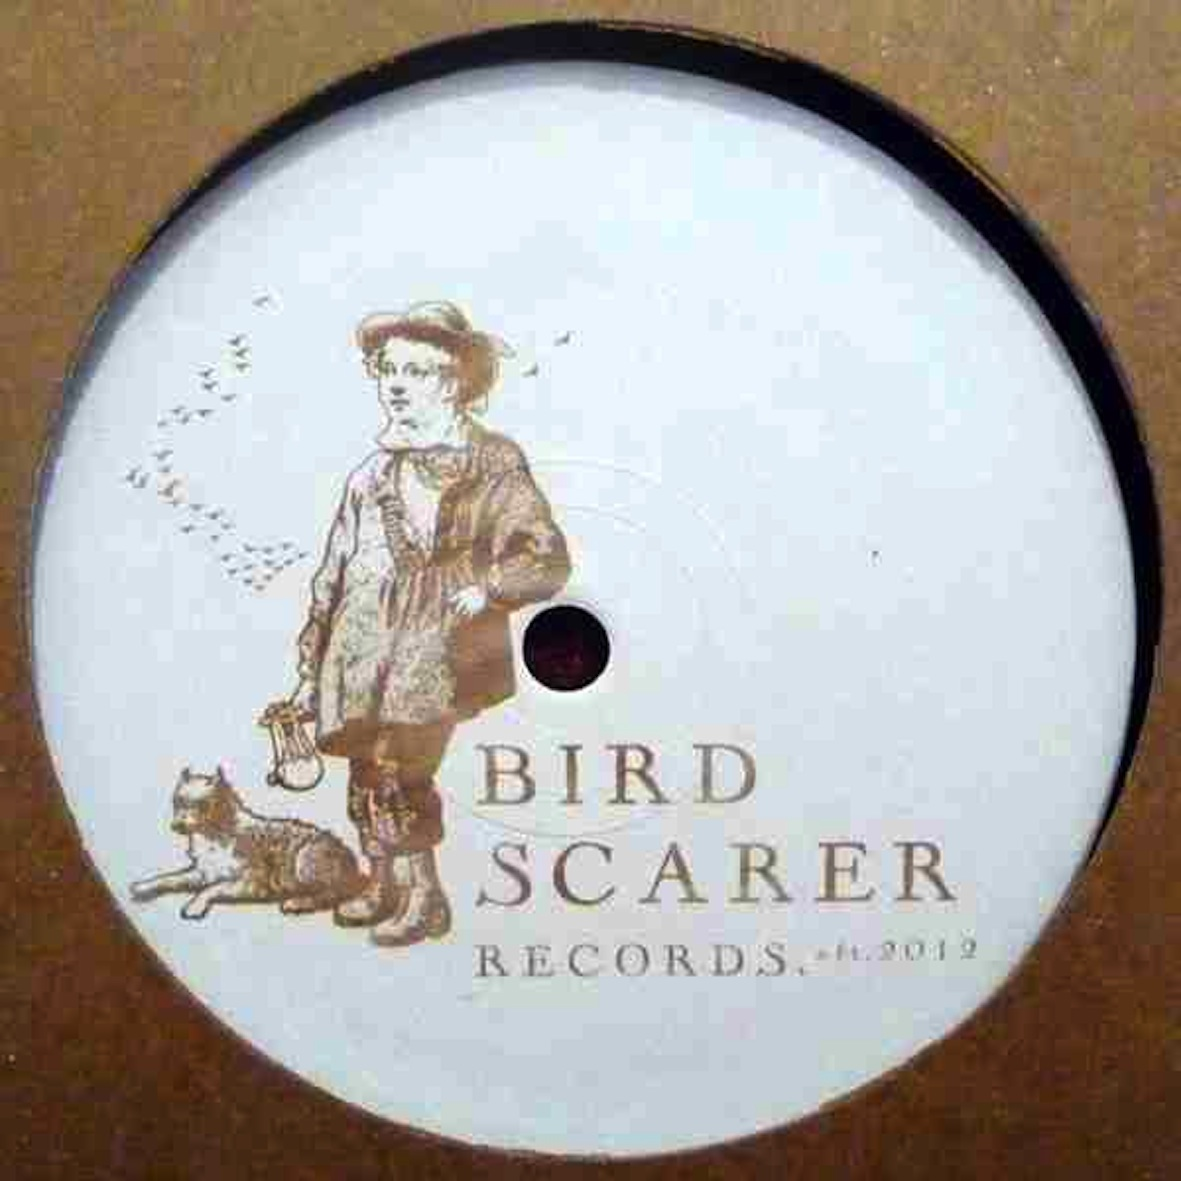 Reviews, Promod, Test Pressing, Dr Rob, Scott Fraser, Timothy Fairplay, Andrew Weatherall, Bird scarer